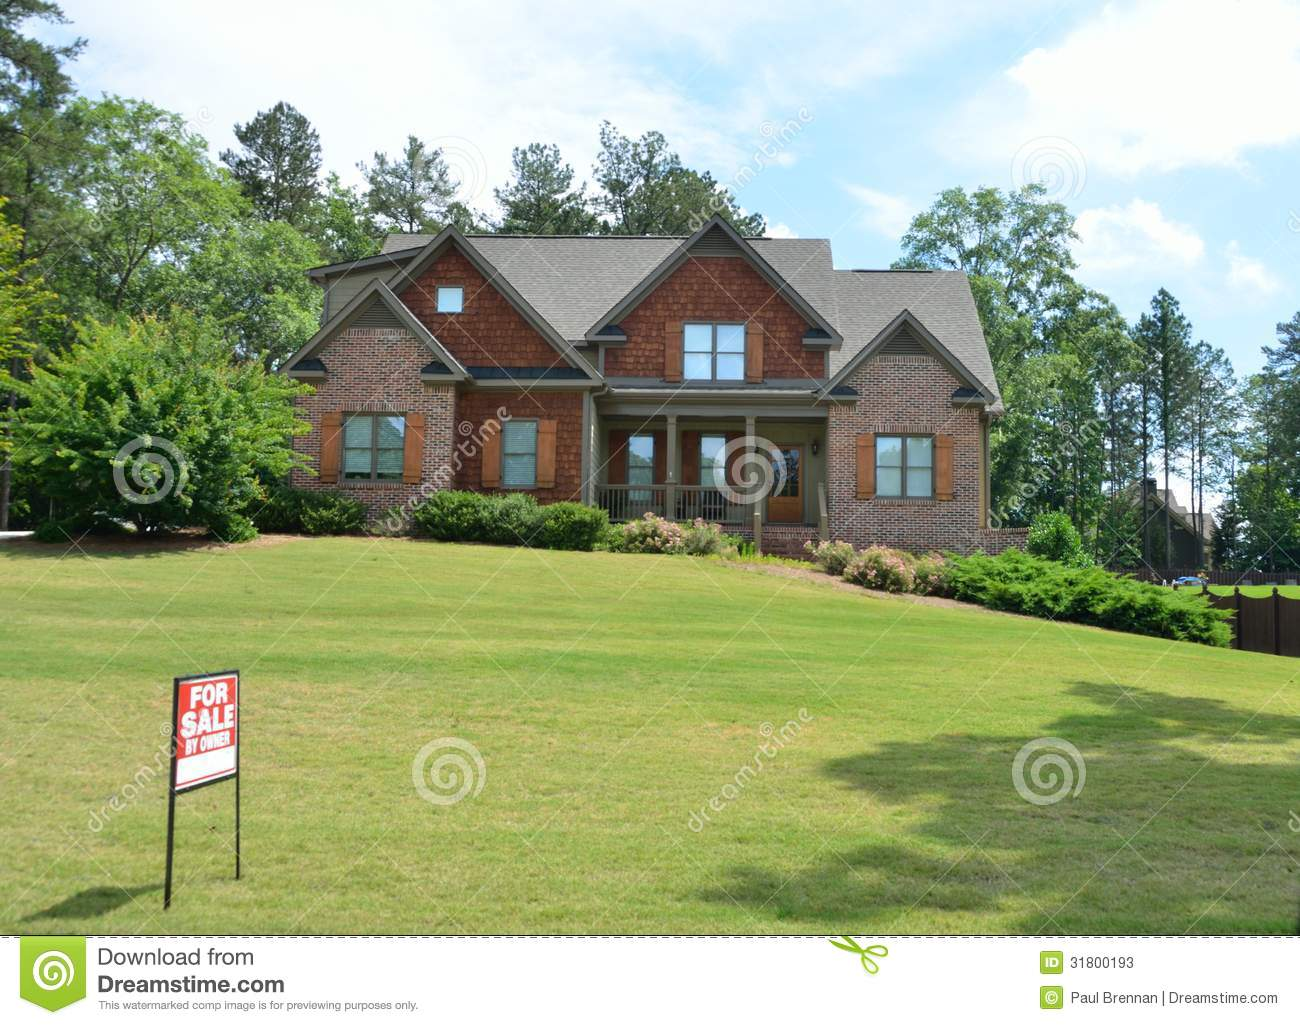 Country house for sale stock photos image 31800193 for Country mansion for sale